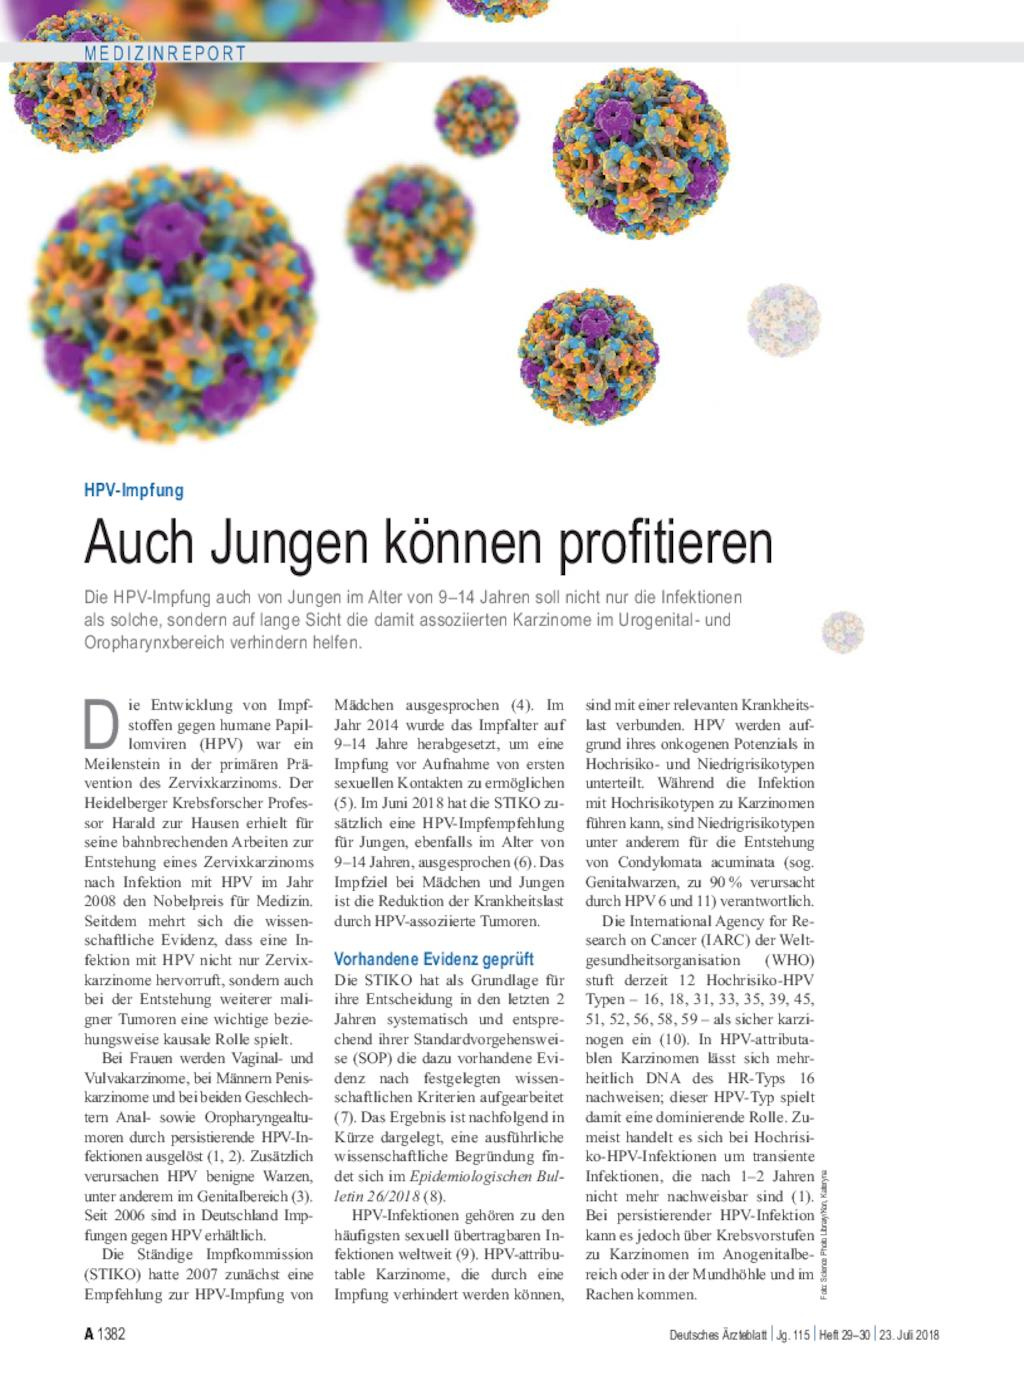 Hpv impfung jungen contra